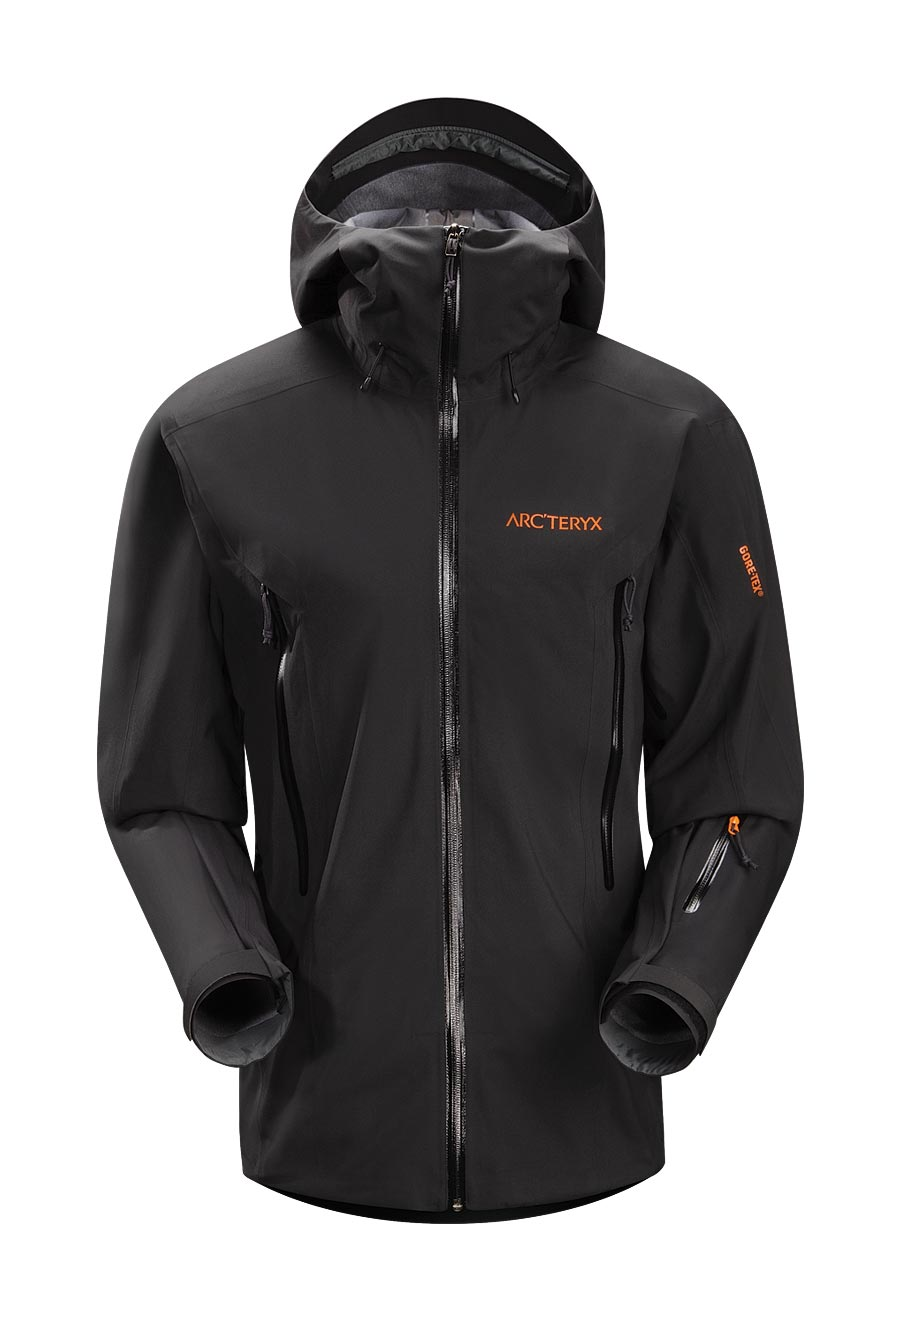 Arcteryx Black Crossbow Jacket